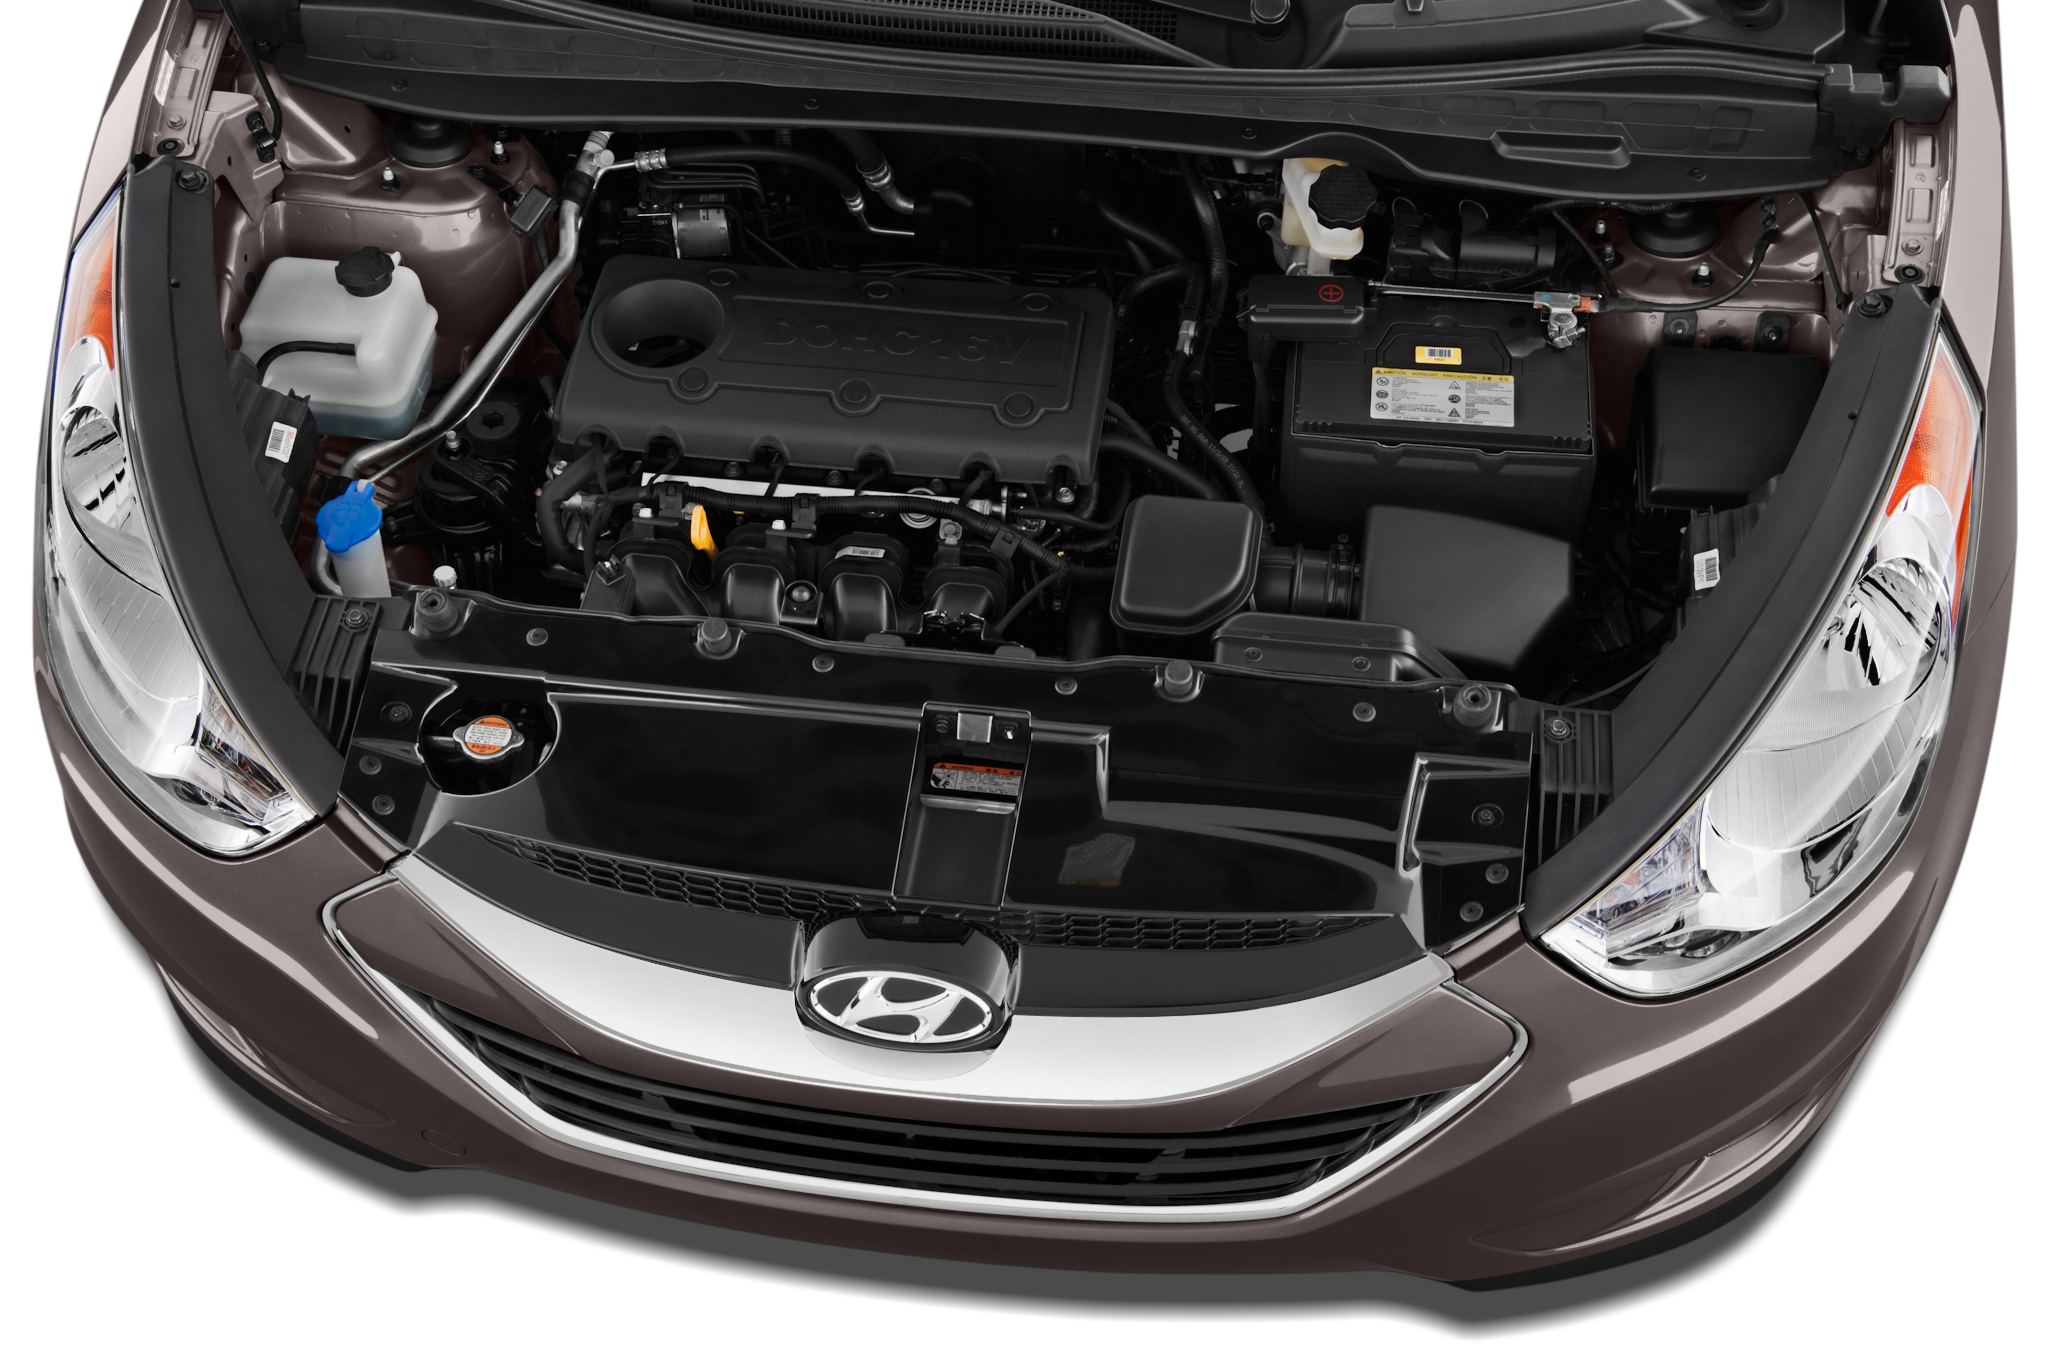 Euro-Spec ix35 Previews 2014 Hyundai Tucson